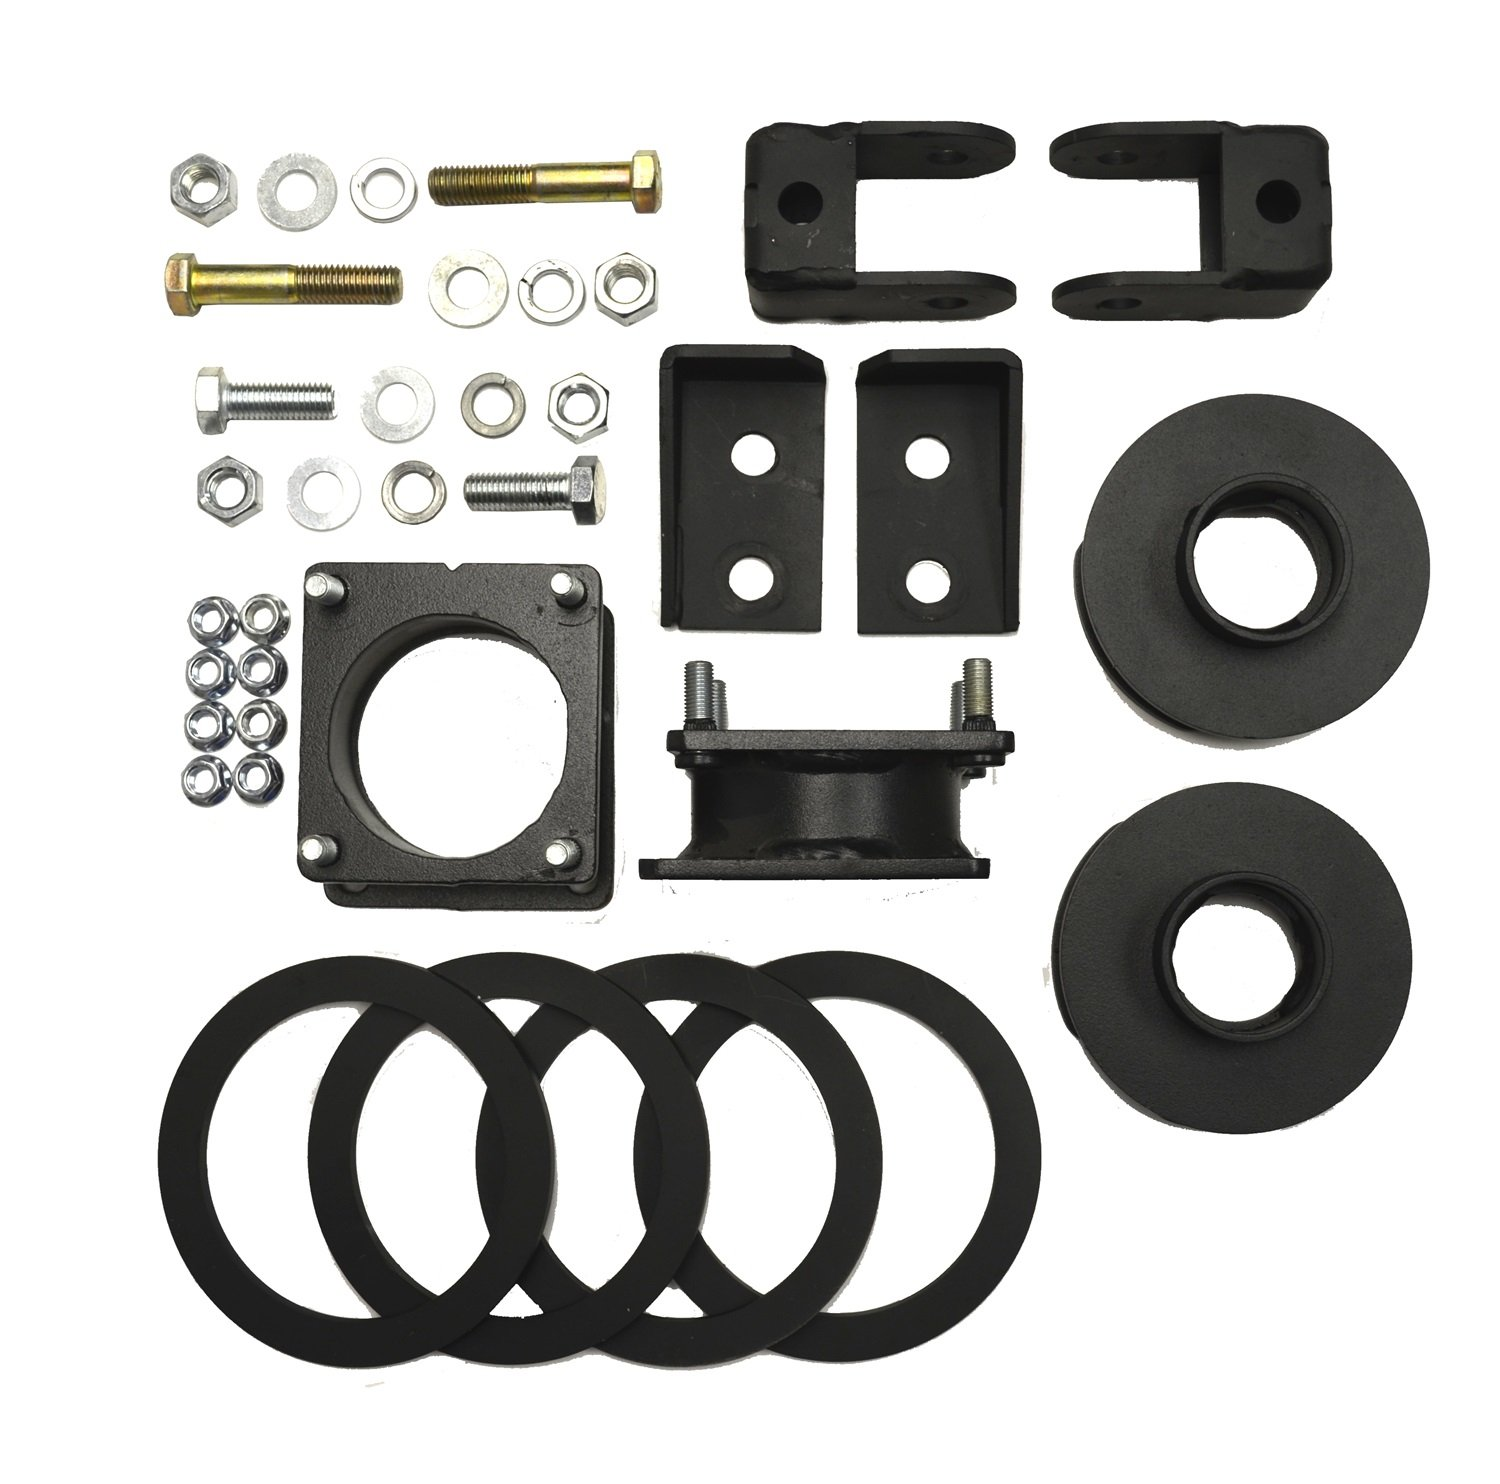 Traxda 102040 Front and Rear Lift Kit by Traxda (Image #1)